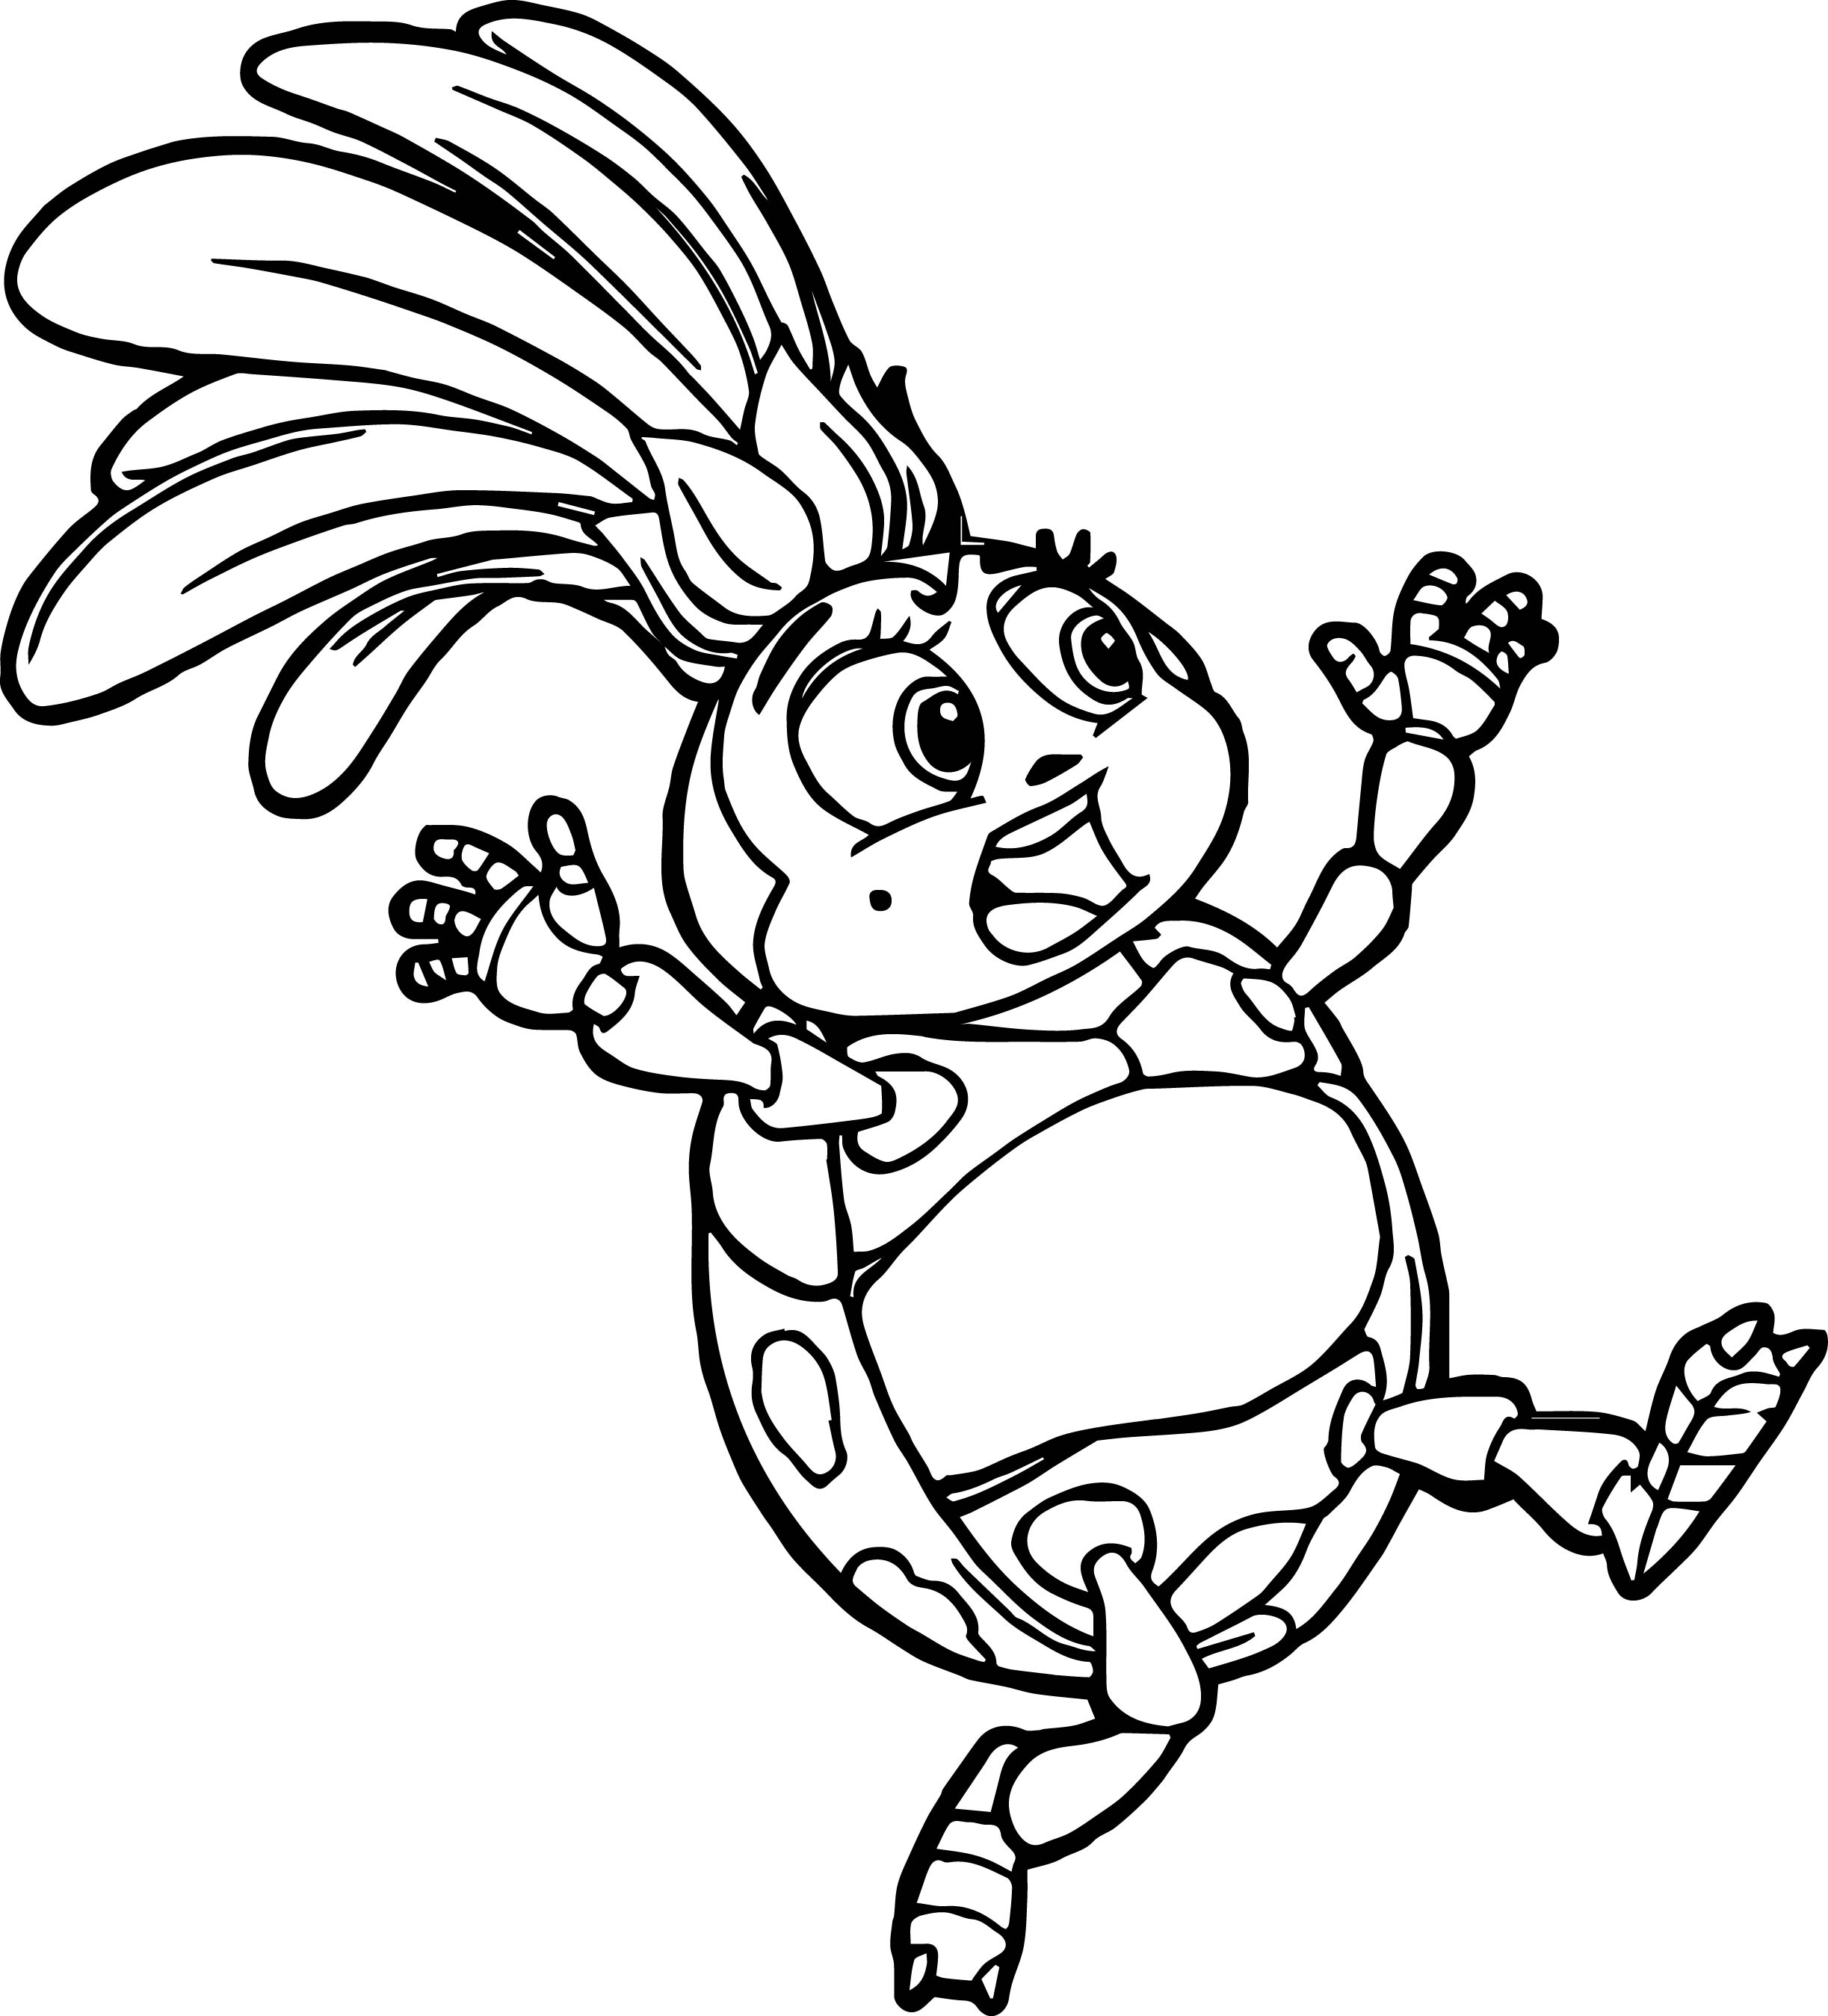 Uncategorized Bugs Life Coloring Pages francis ladybug coloring page wecoloringpage page